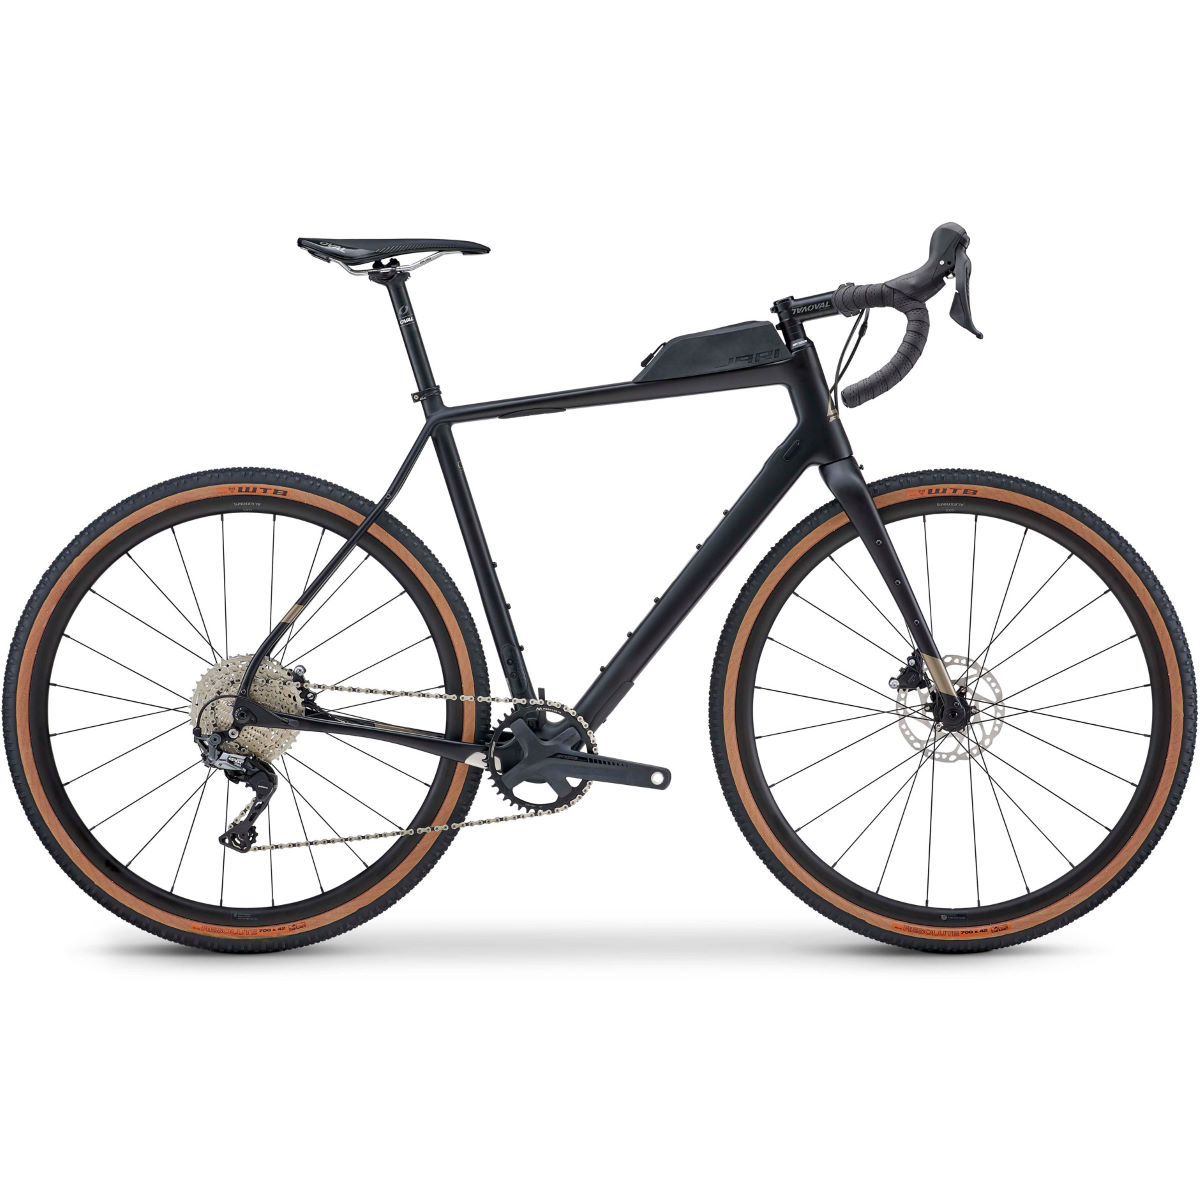 Fuji Fuji Jari Carbon 1.3 Gravel Bike (2021)   Adventure Bikes